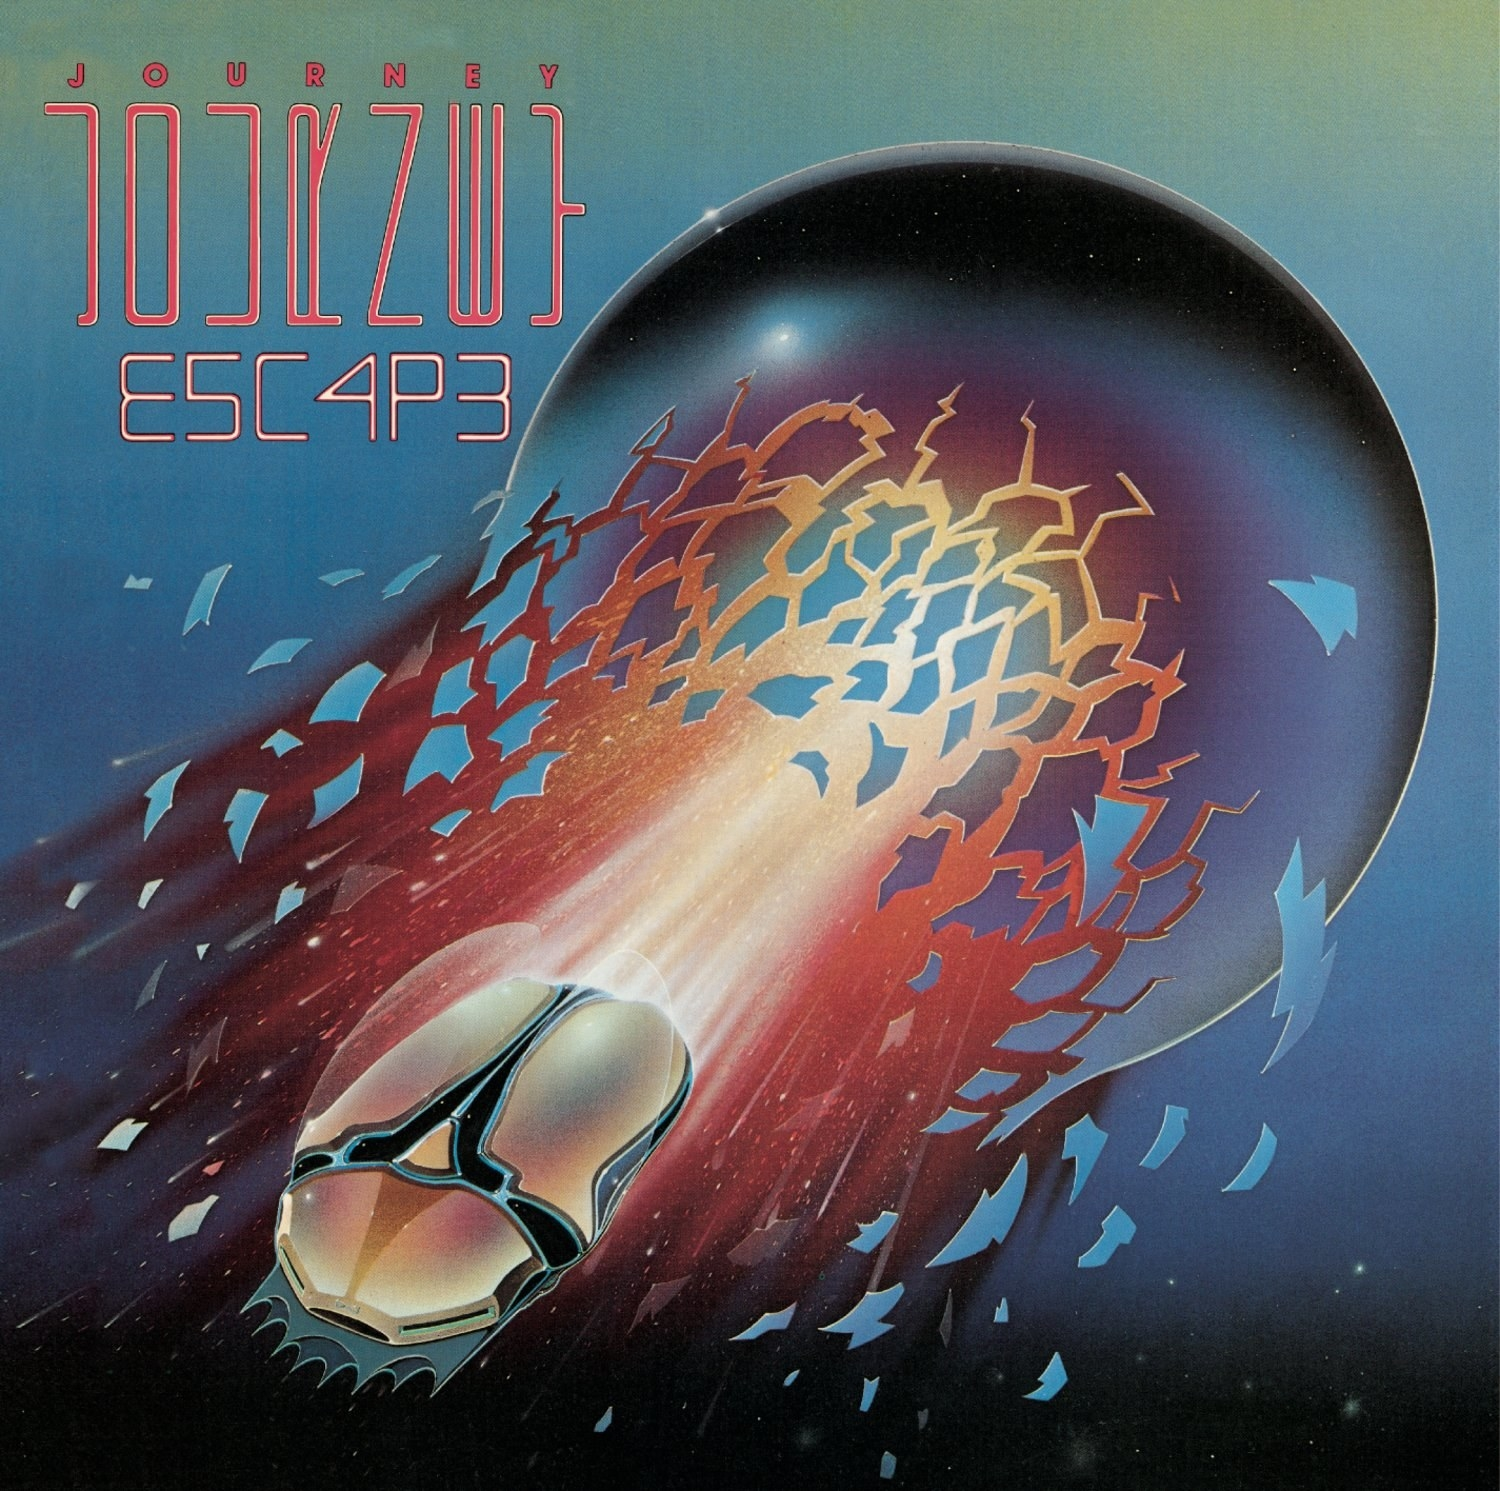 album cover of Escape showing a space ship bursting from a planet